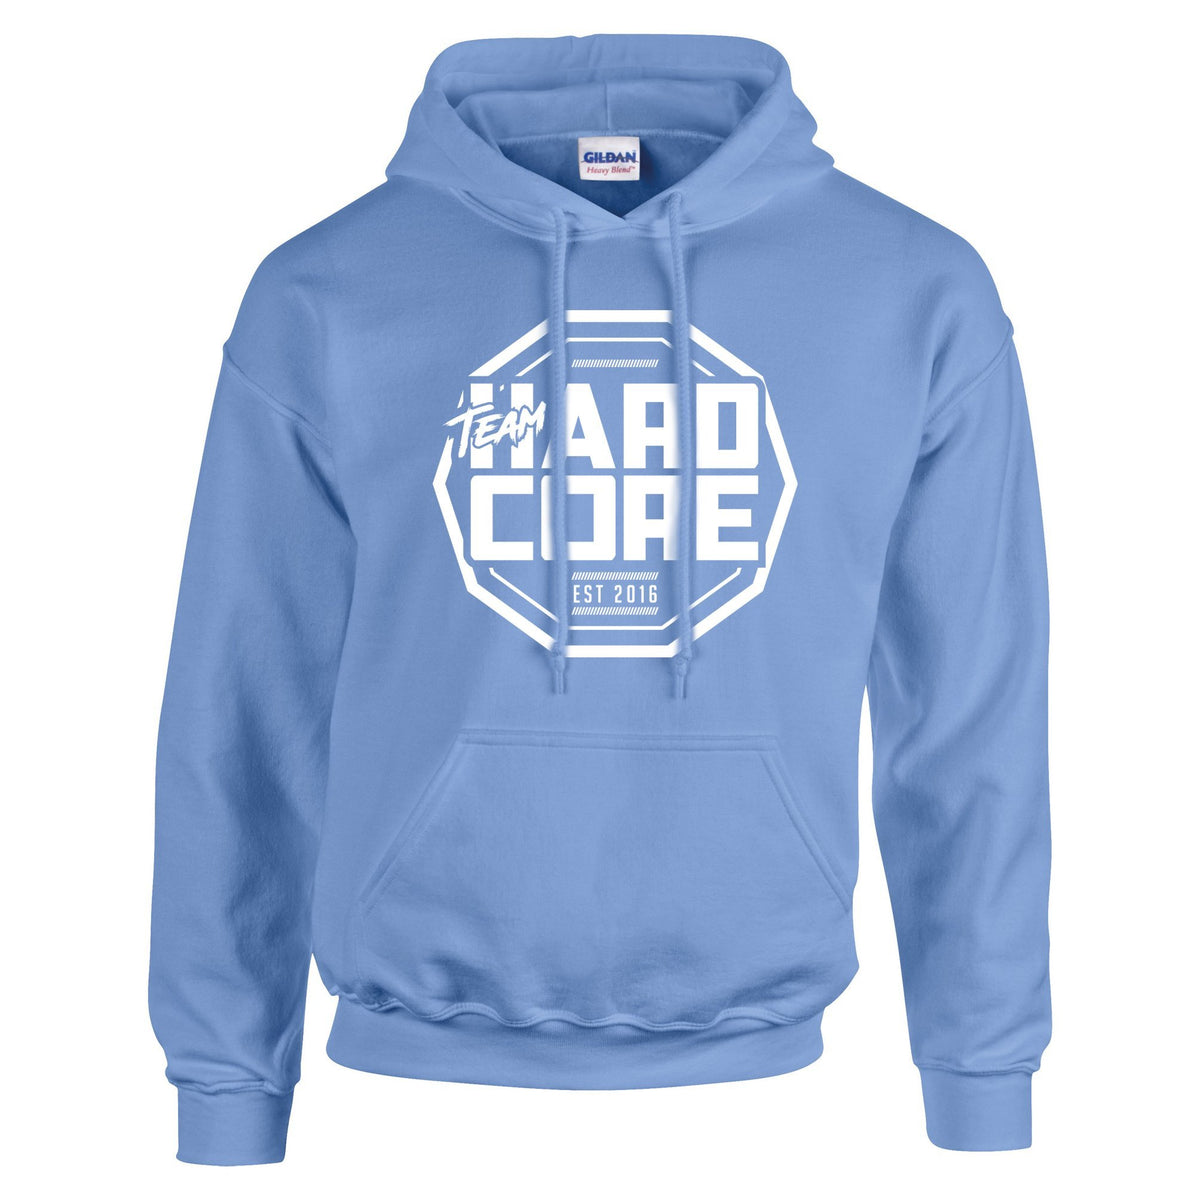 Team Hardcore Unisex Hoodie - Sapphire Blue & White Team Hardcore Small